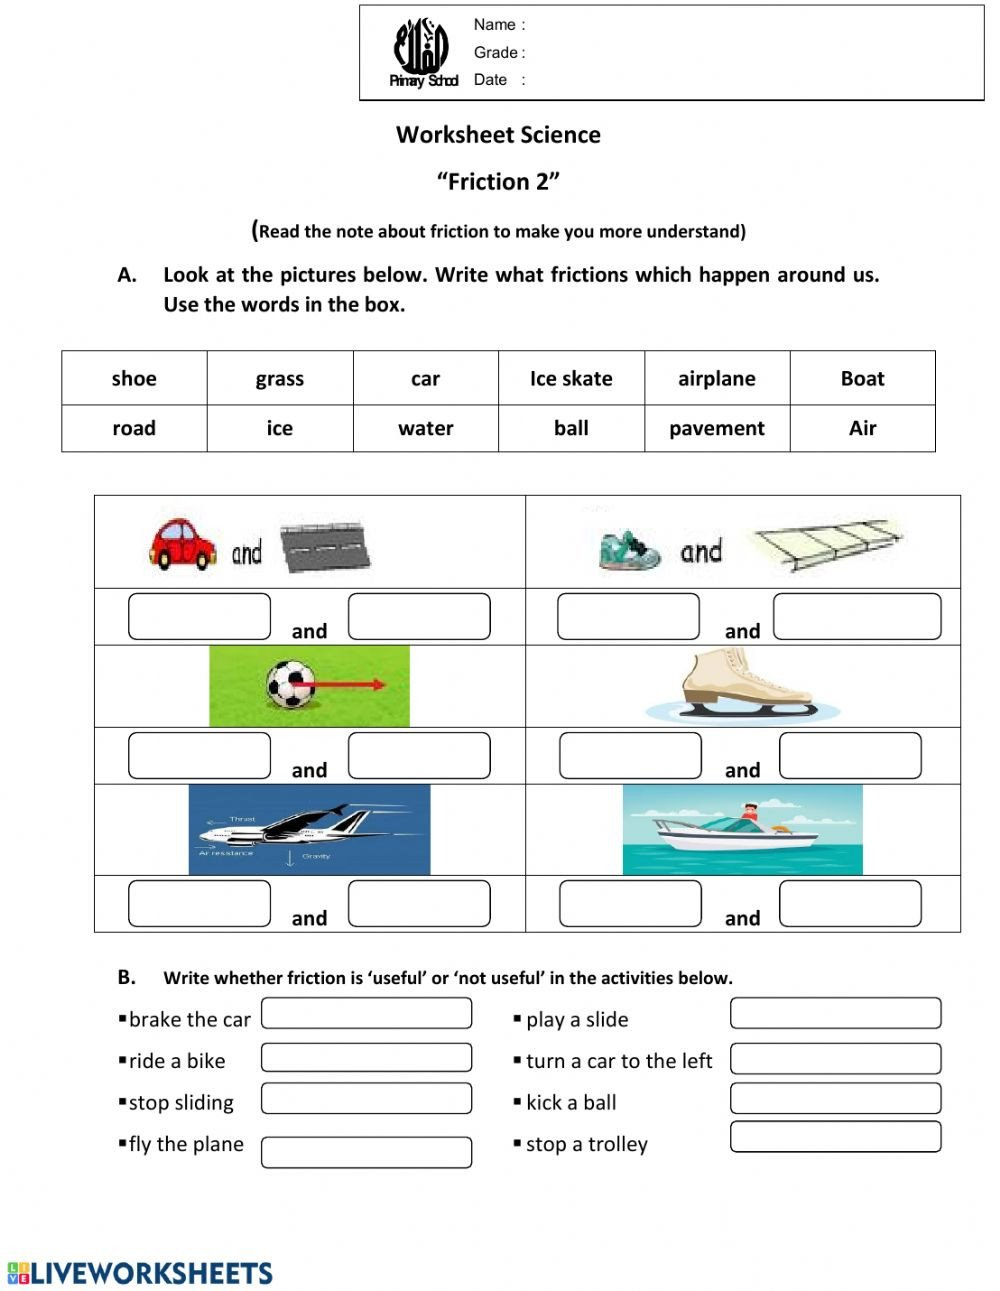 Science forces and Motion Worksheets Worksheet Science Friction 2 Interactive Worksheet